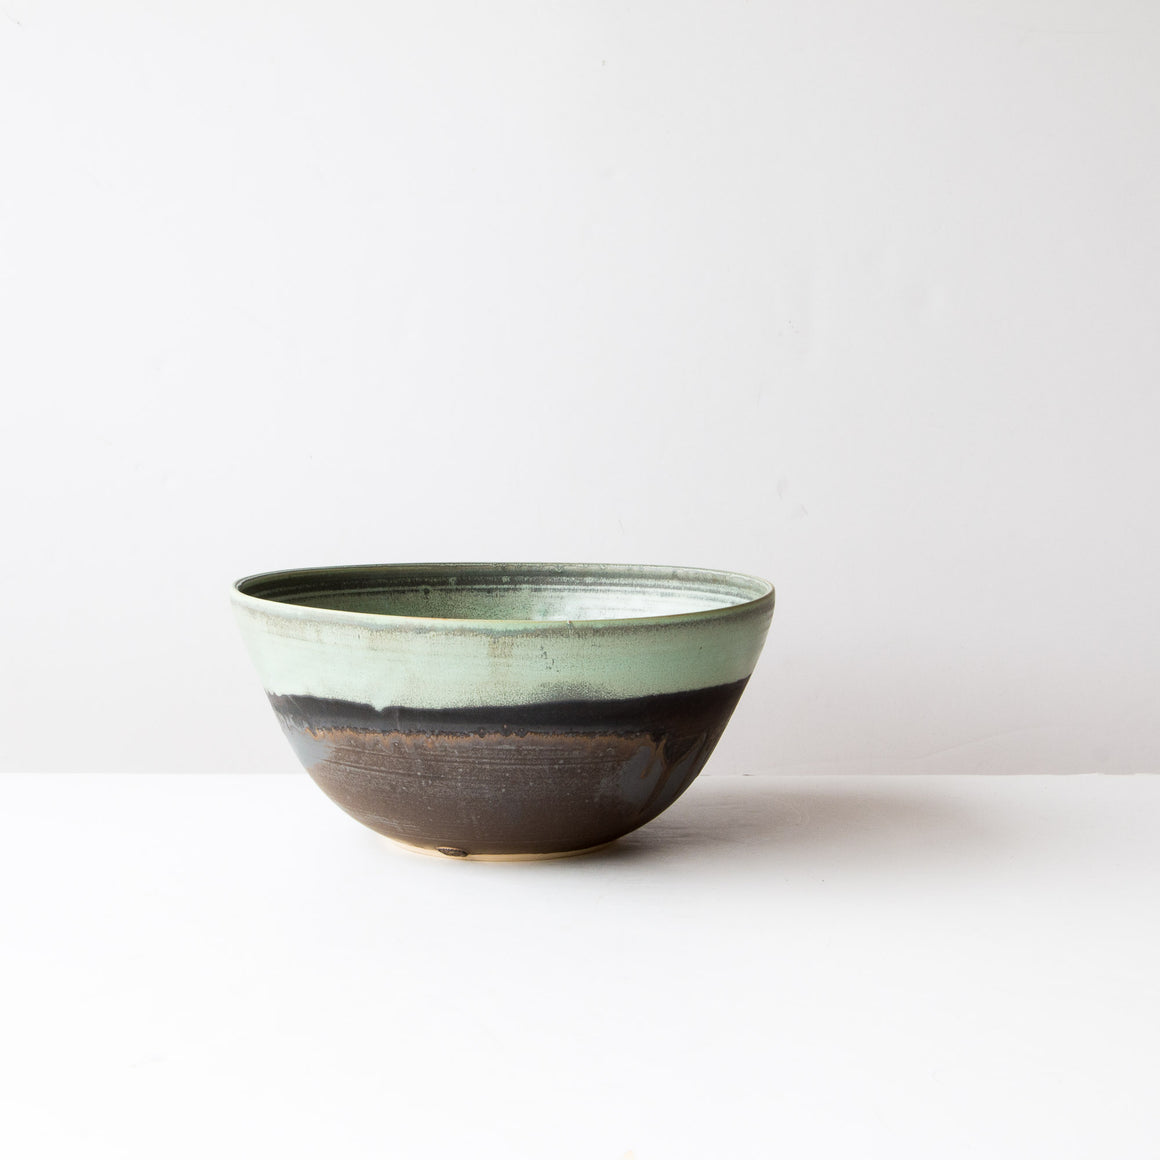 Handcrafted Large Stoneware Turquoise Bowl - Sold by Chic & Basta